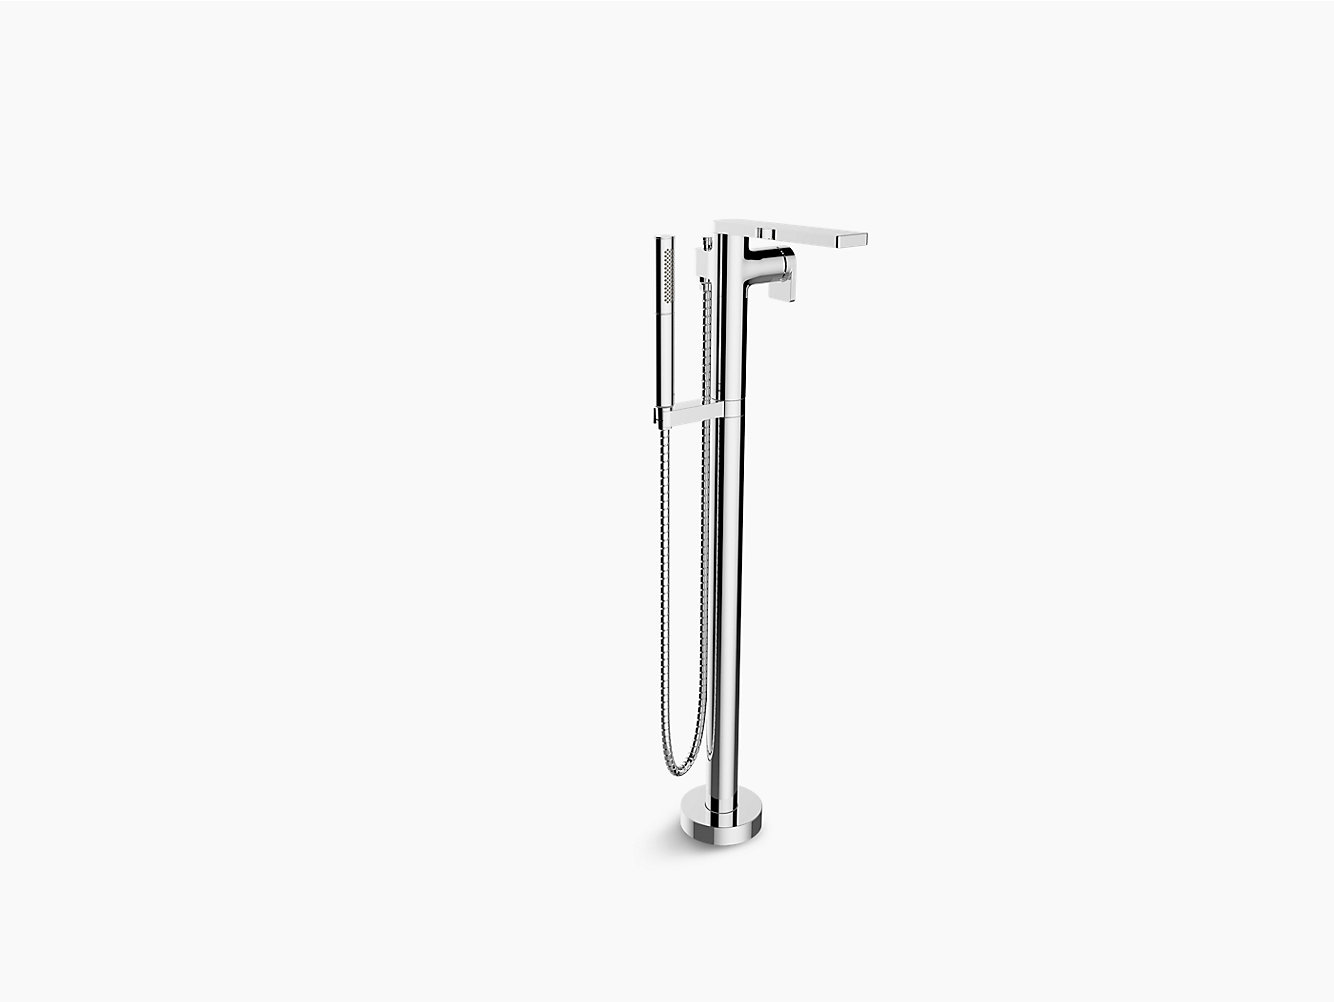 Composed Free-standing bath shower Faucet | 73087T-4 | KOHLER